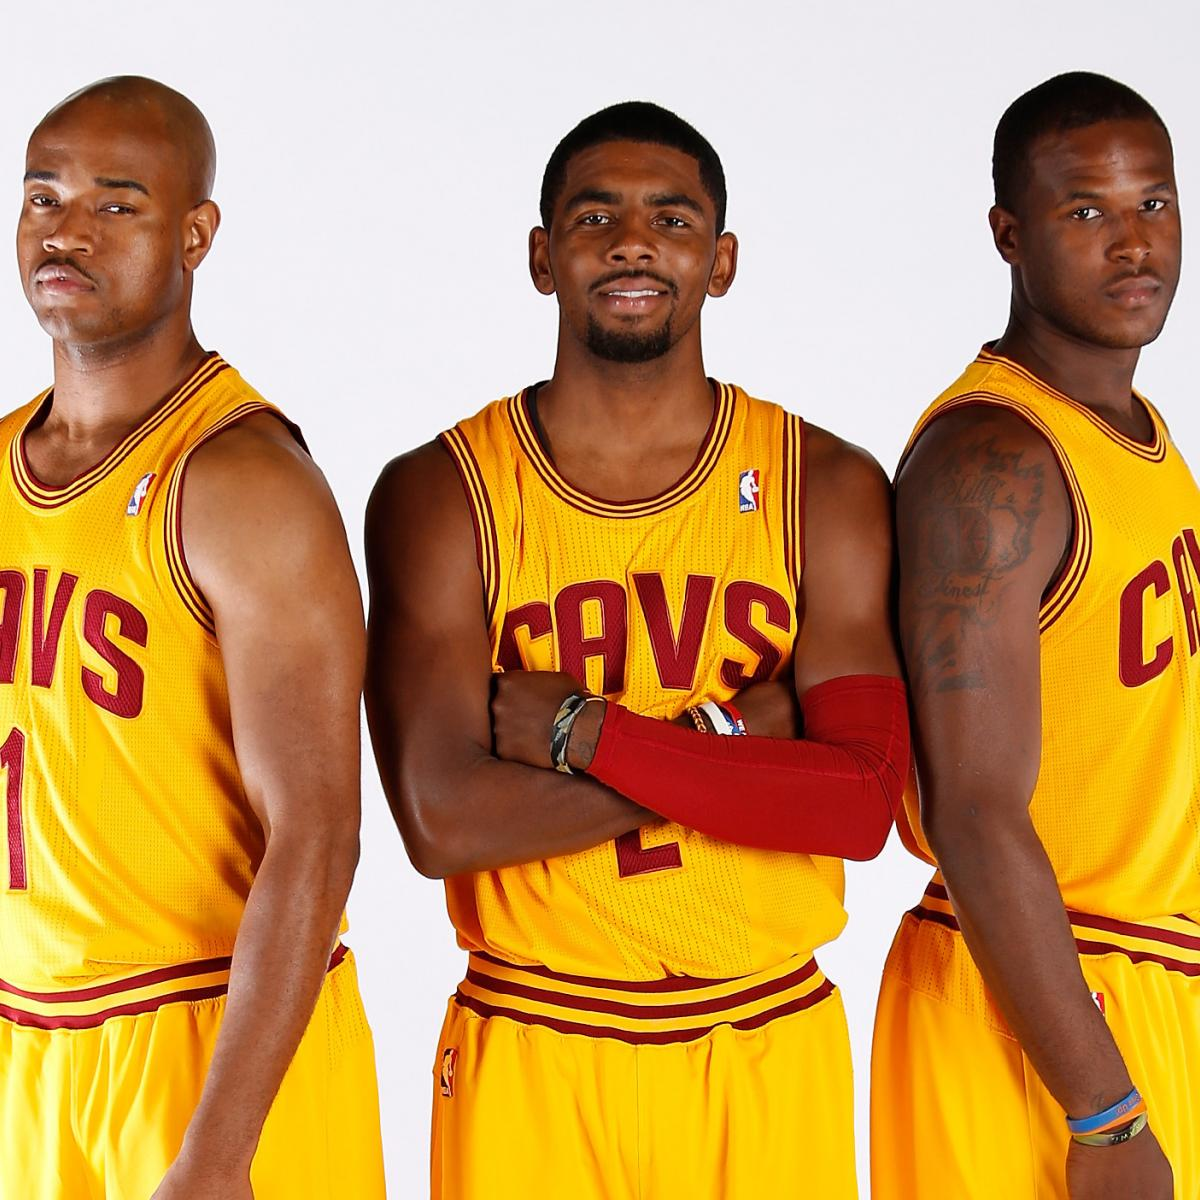 Blazer Team Roster 2013: Cleveland Cavaliers Preview 2013-14: Lineup, Roster